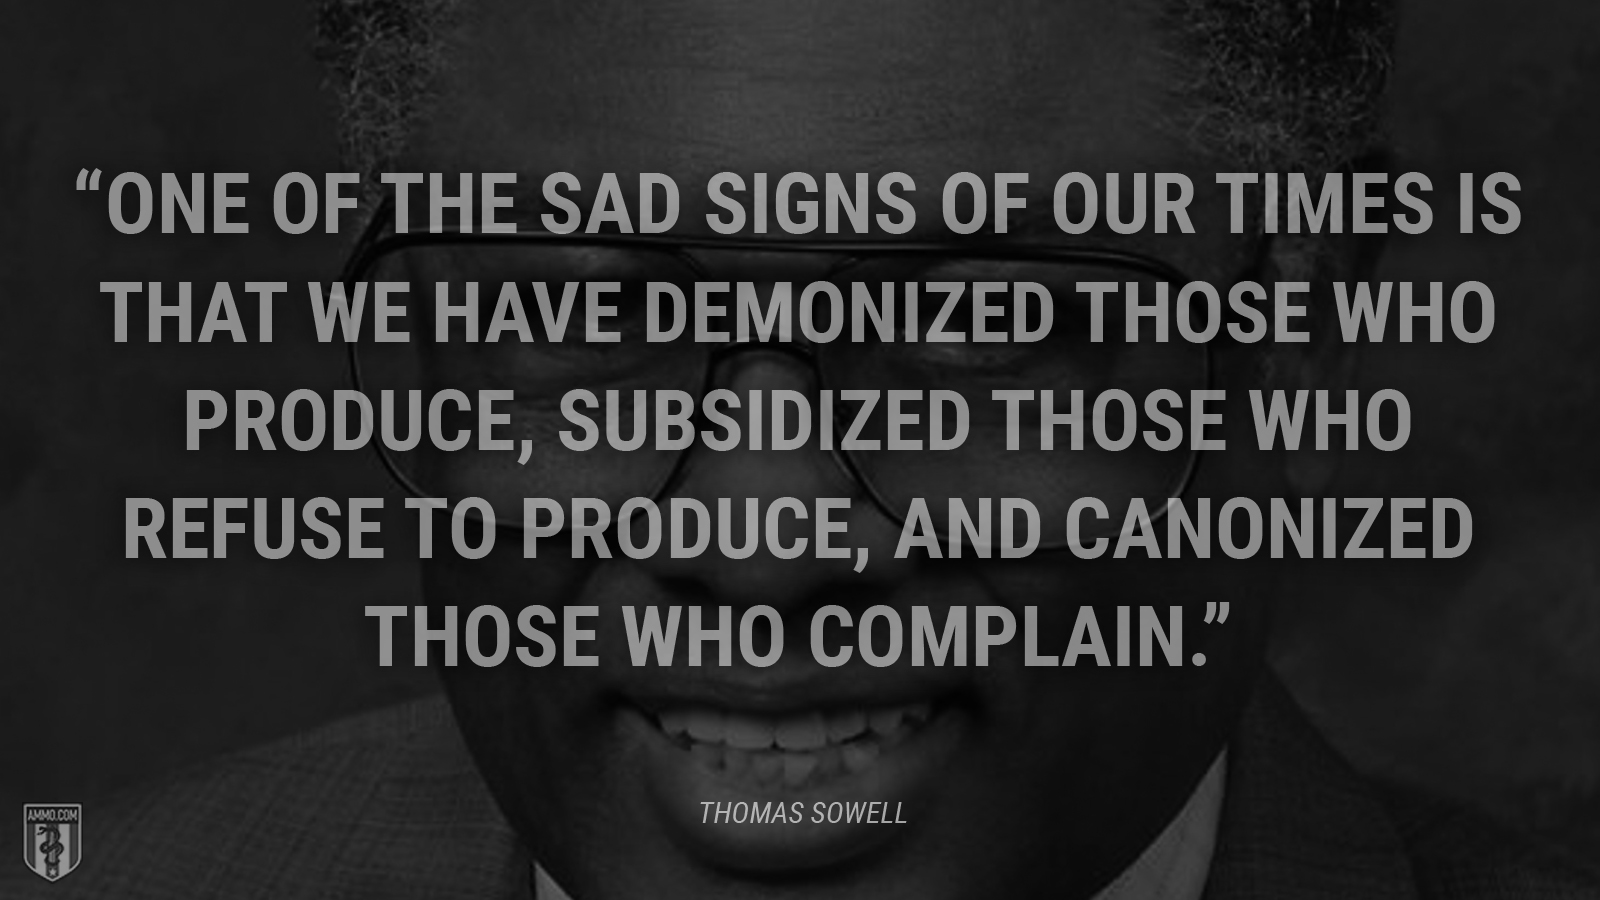 """One of the sad signs of our times is that we have demonized those who produce, subsidized those who refuse to produce, and canonized those who complain."" - Thomas Sowell"